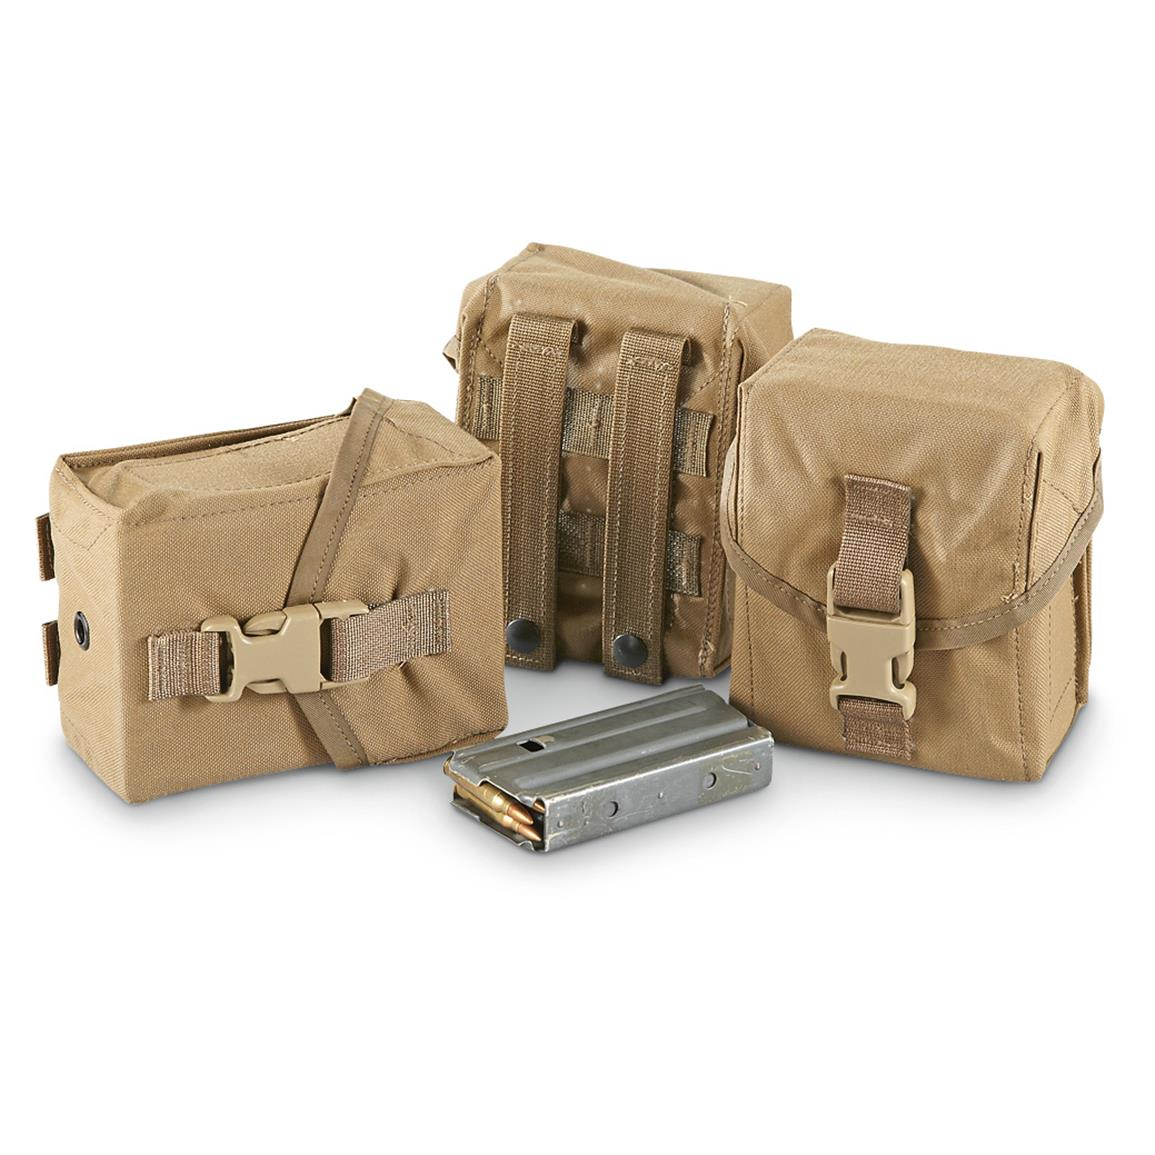 3 New U.S. Military Surplus 100-rd. Pouches • 60-cu. in. capacity